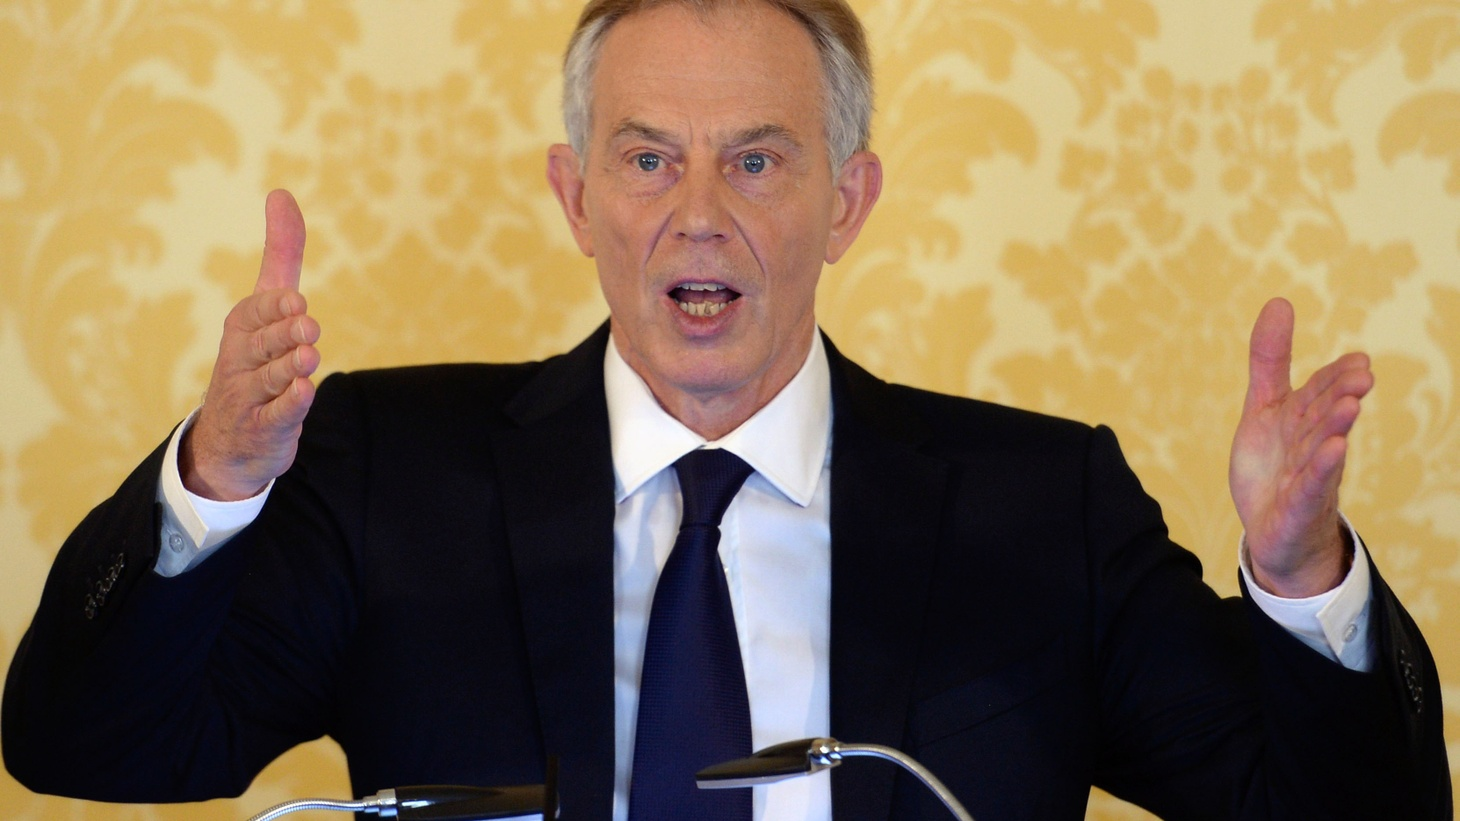 A long-awaited report released sharply criticized Tony Blair for leading Britain into the Iraq War, but Blair maintains that Iraq is better off now without Saddam Hussein. What's going on inside Iraq and what is the current U.S. policy there?